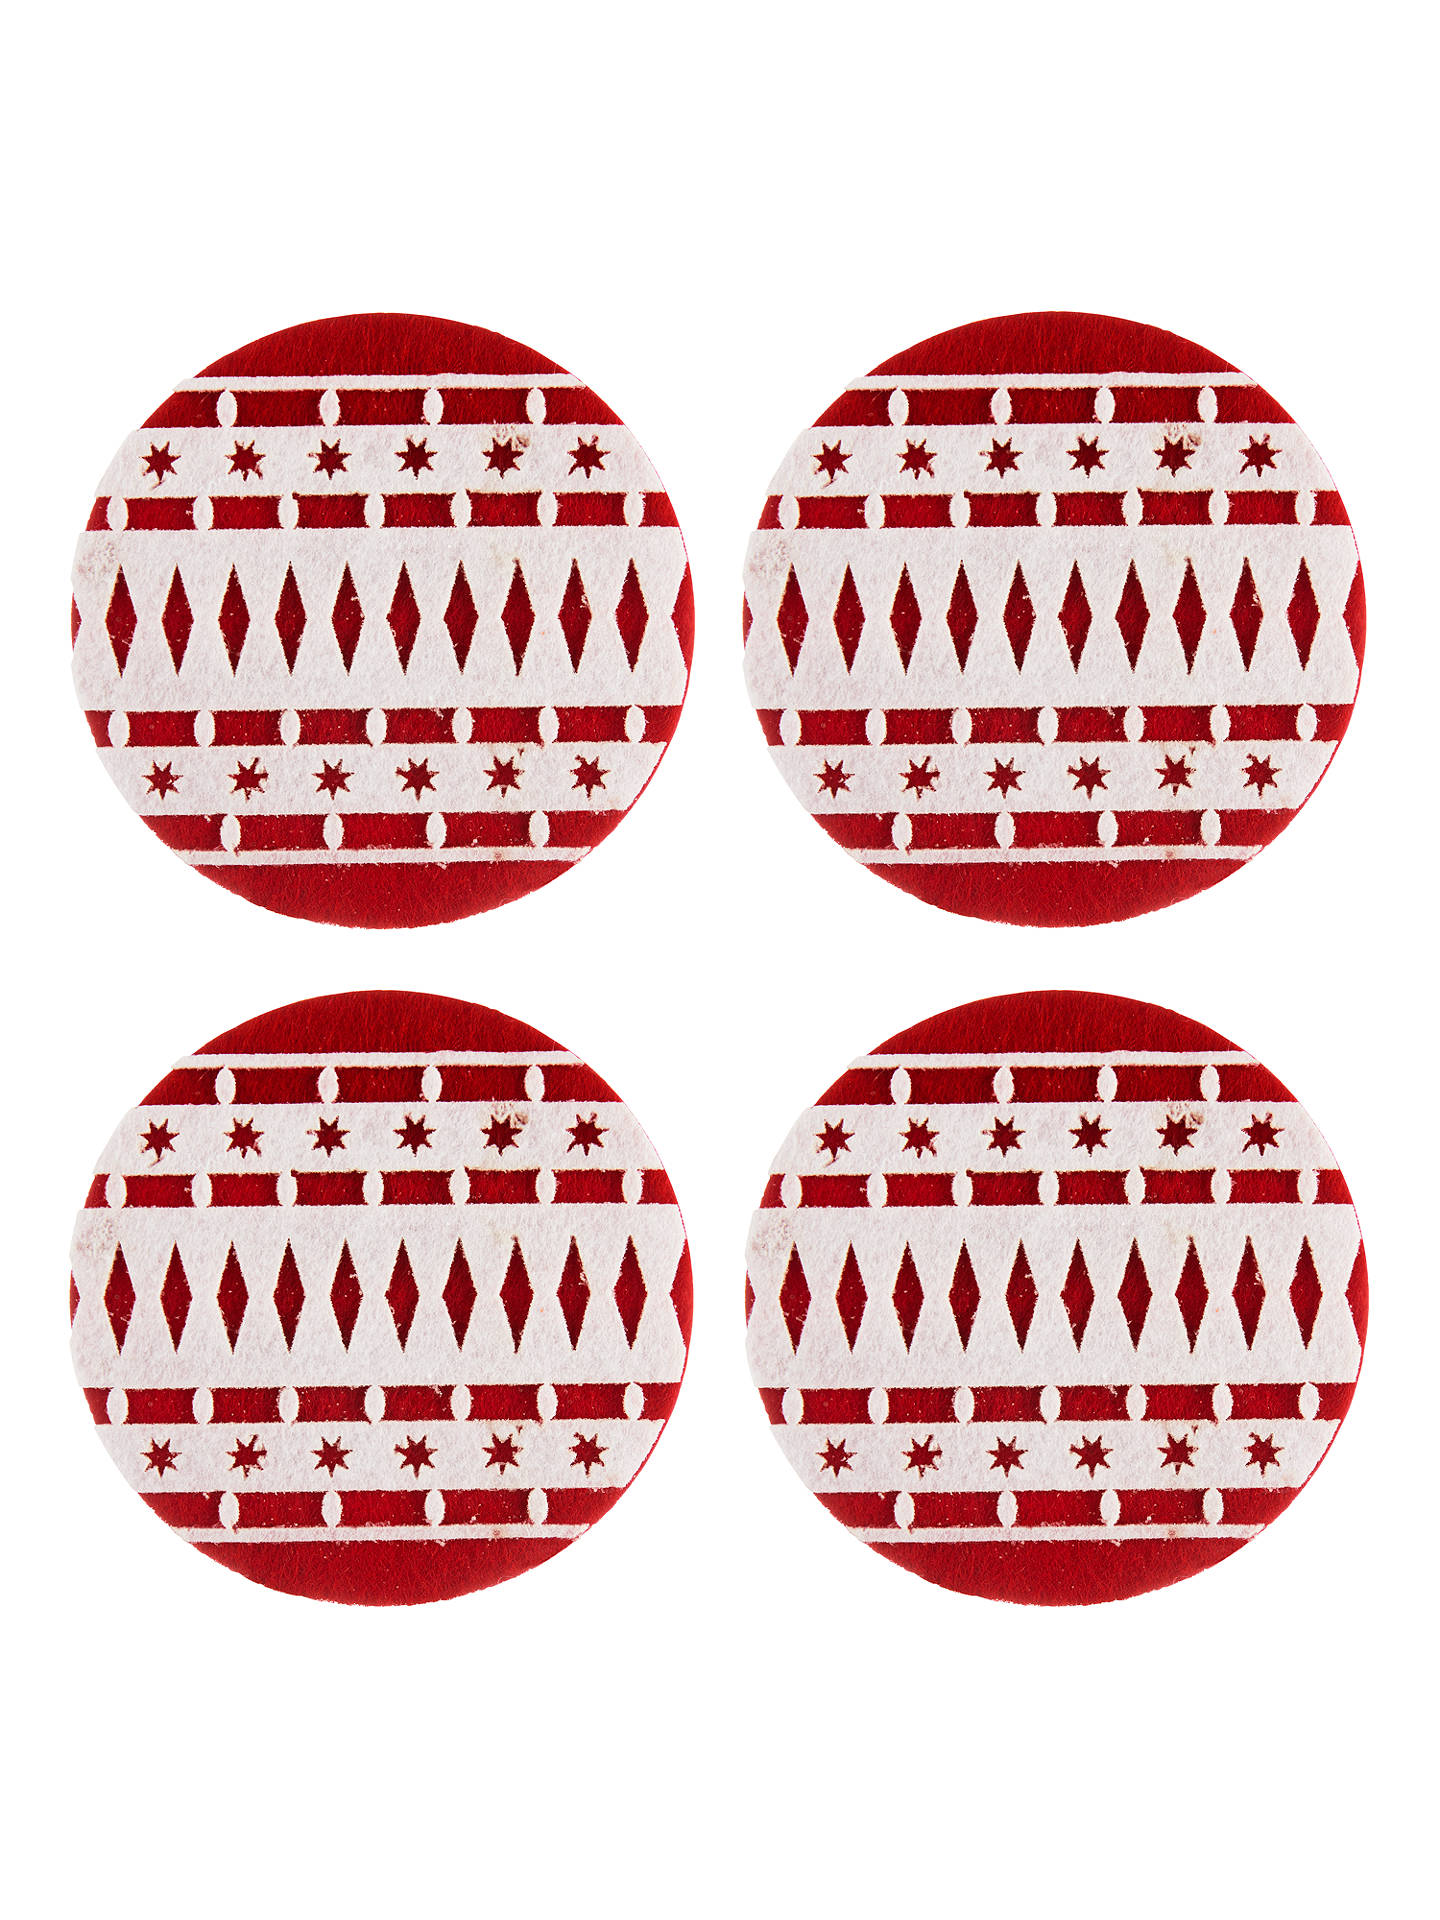 BuyJohn Lewis & Partners Felt Christmas Bauble Coasters, Red/White, Set of 4 Online at johnlewis.com